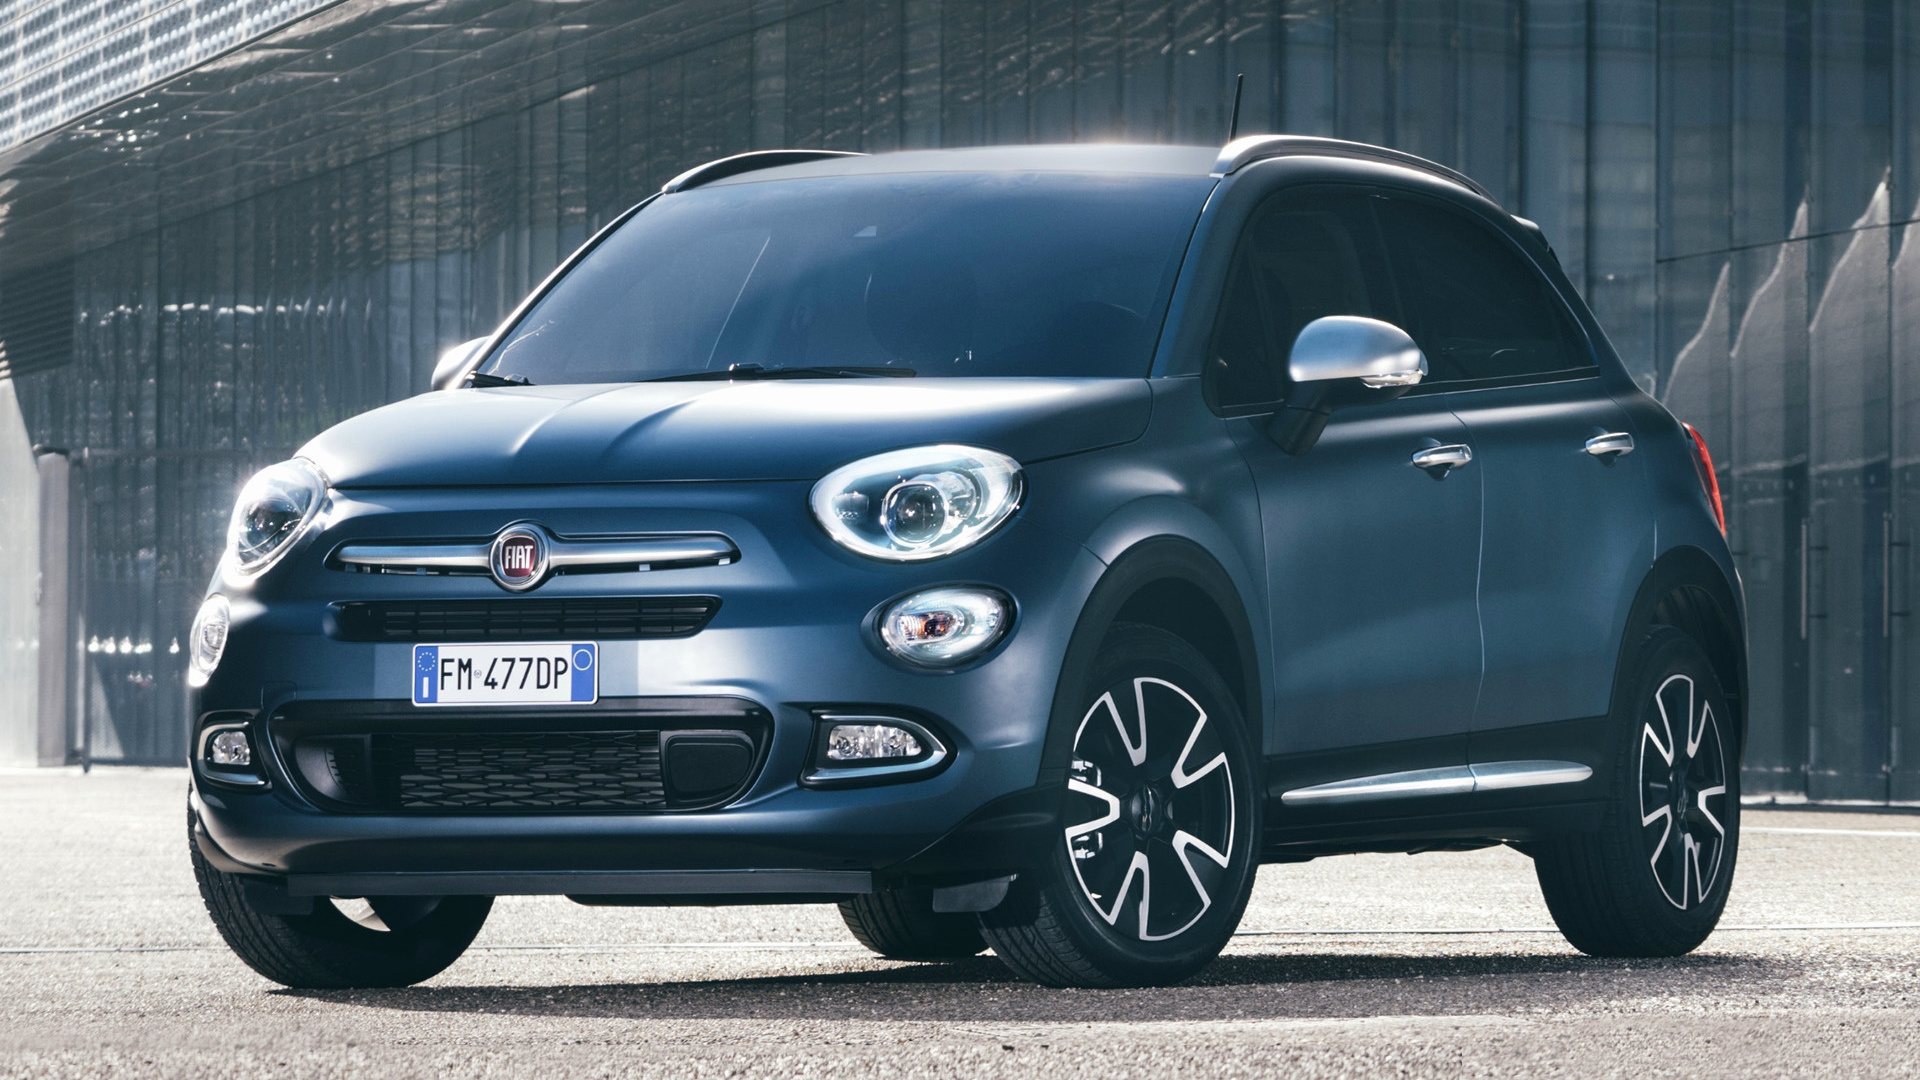 2018 fiat 500x mirror wallpapers and hd images car pixel. Black Bedroom Furniture Sets. Home Design Ideas